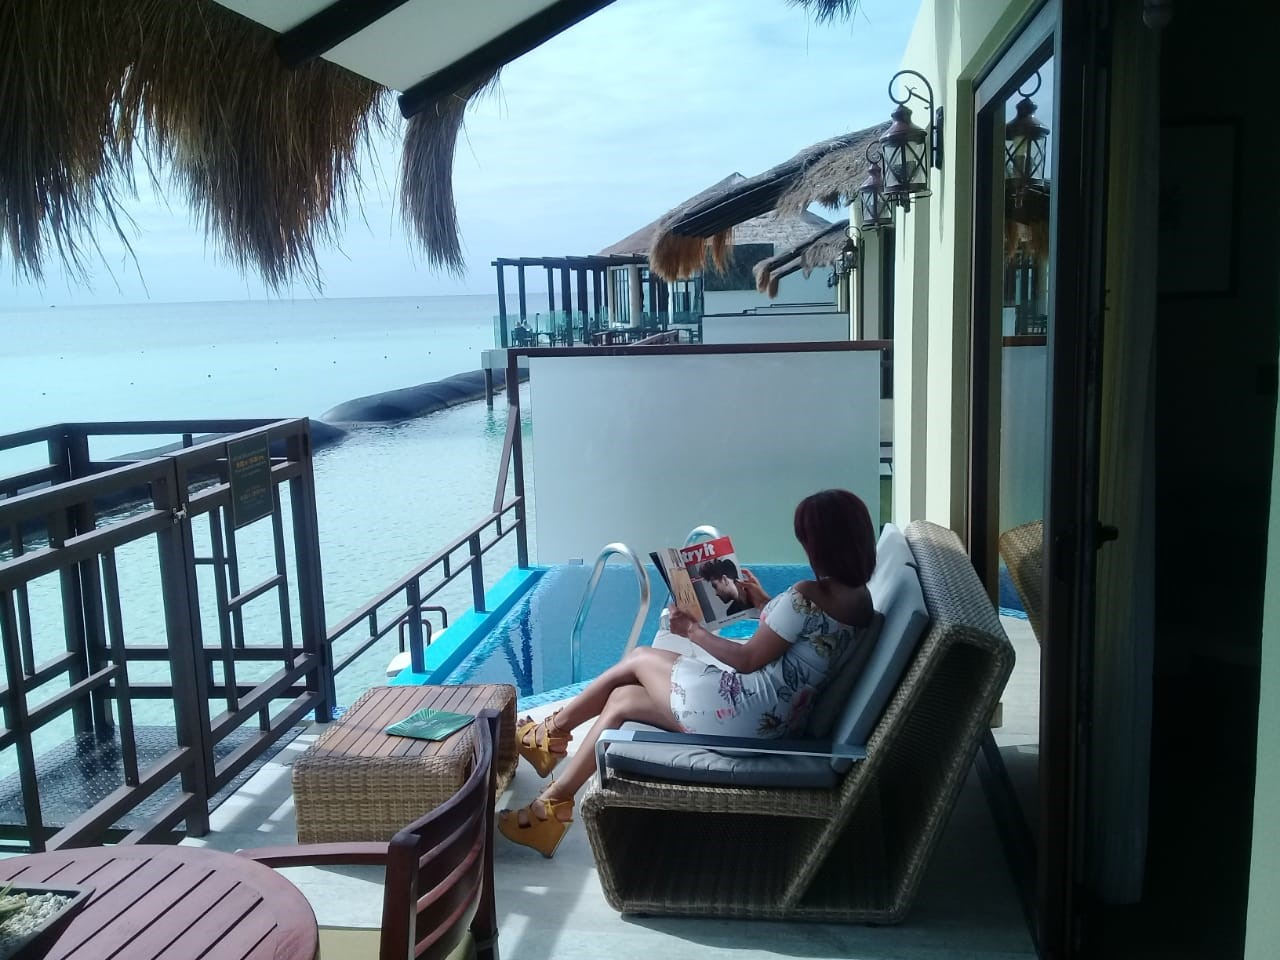 Silvia Lounging - A romantic honeymoon with butler service at Mexico's first overwater bungalows